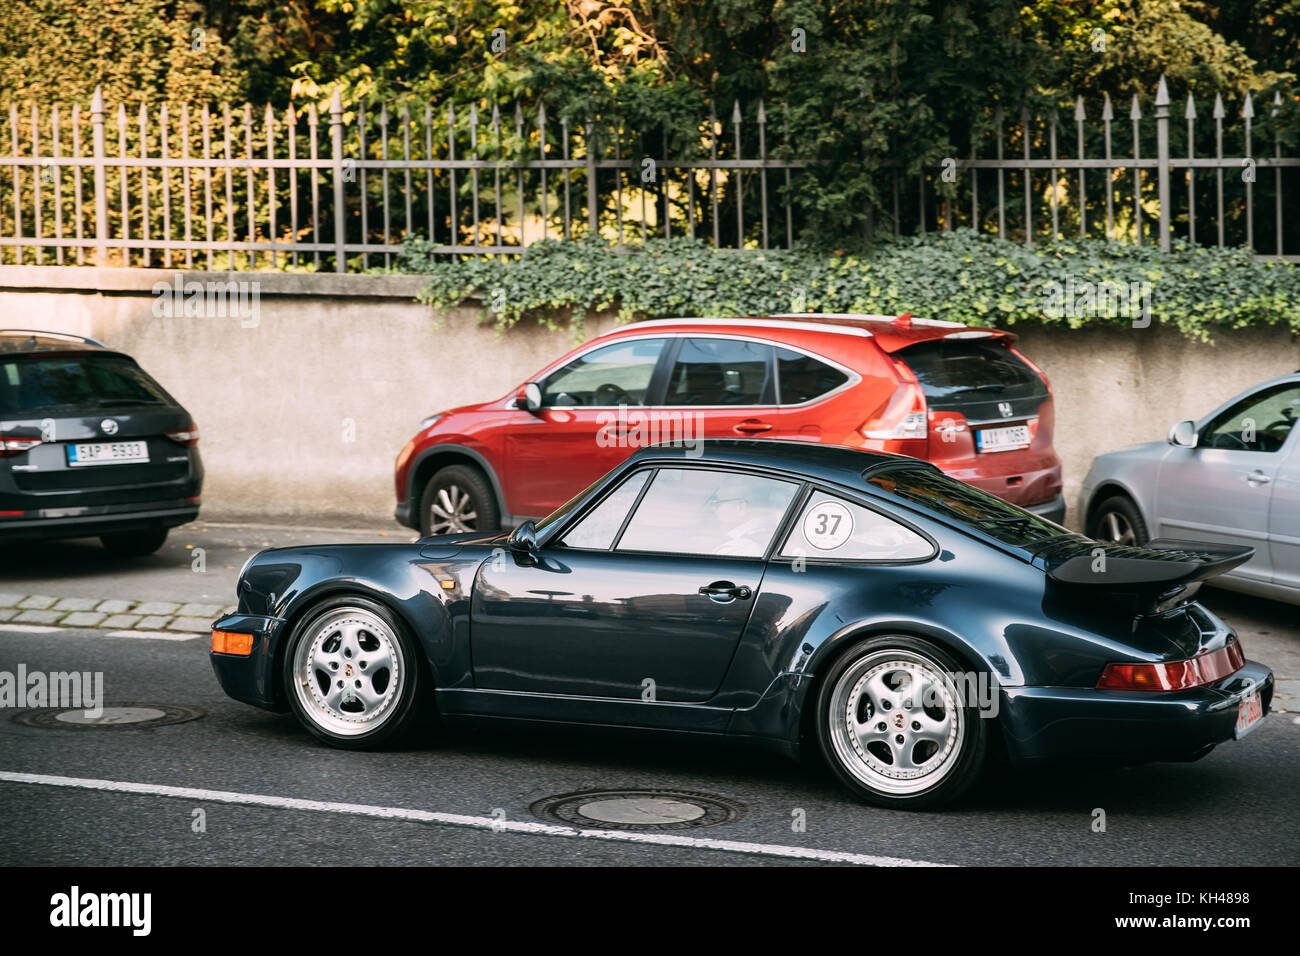 Prague, Czech Republic   September 23, 2017: Side View Of Porsche 964 Turbo